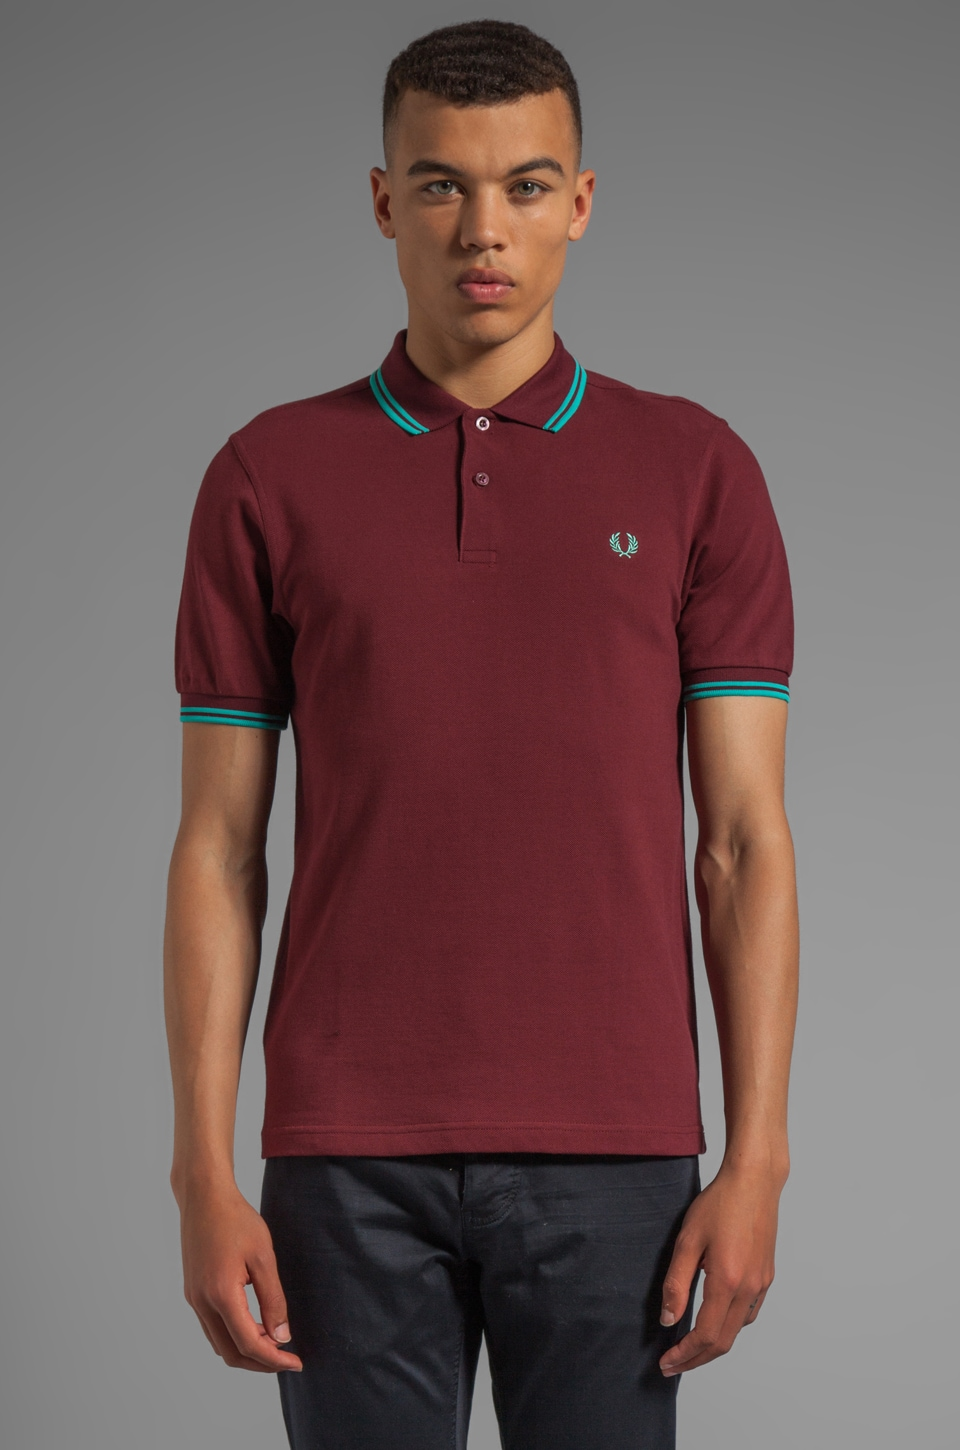 Fred Perry Twin Tipped Shirt in Port/Peppermint